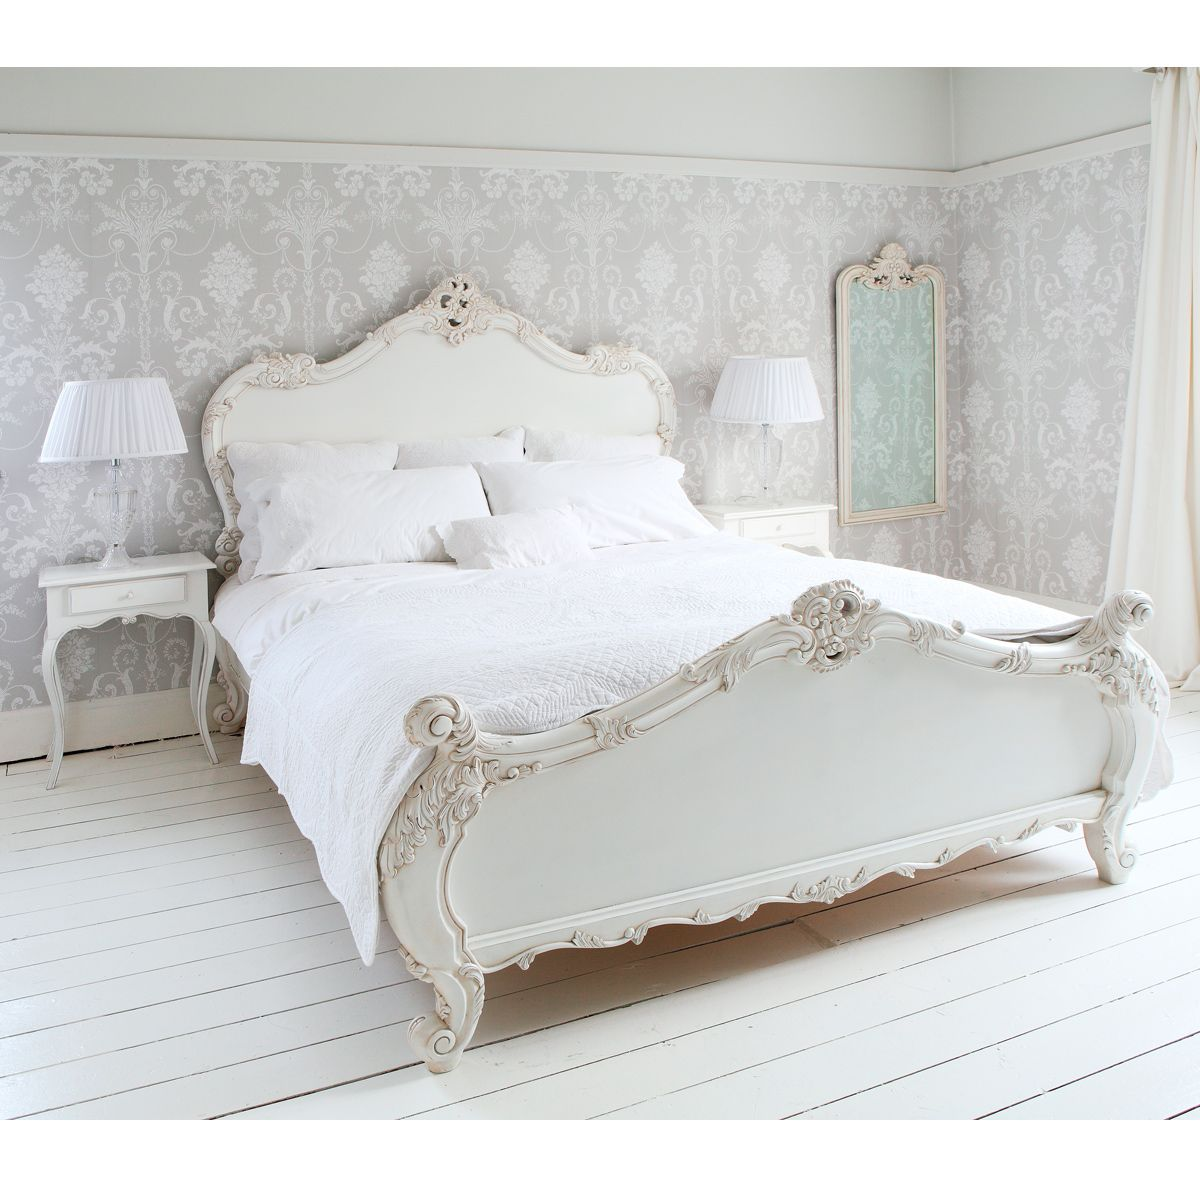 French bed on pinterest classic furniture luxury for Classic french beds